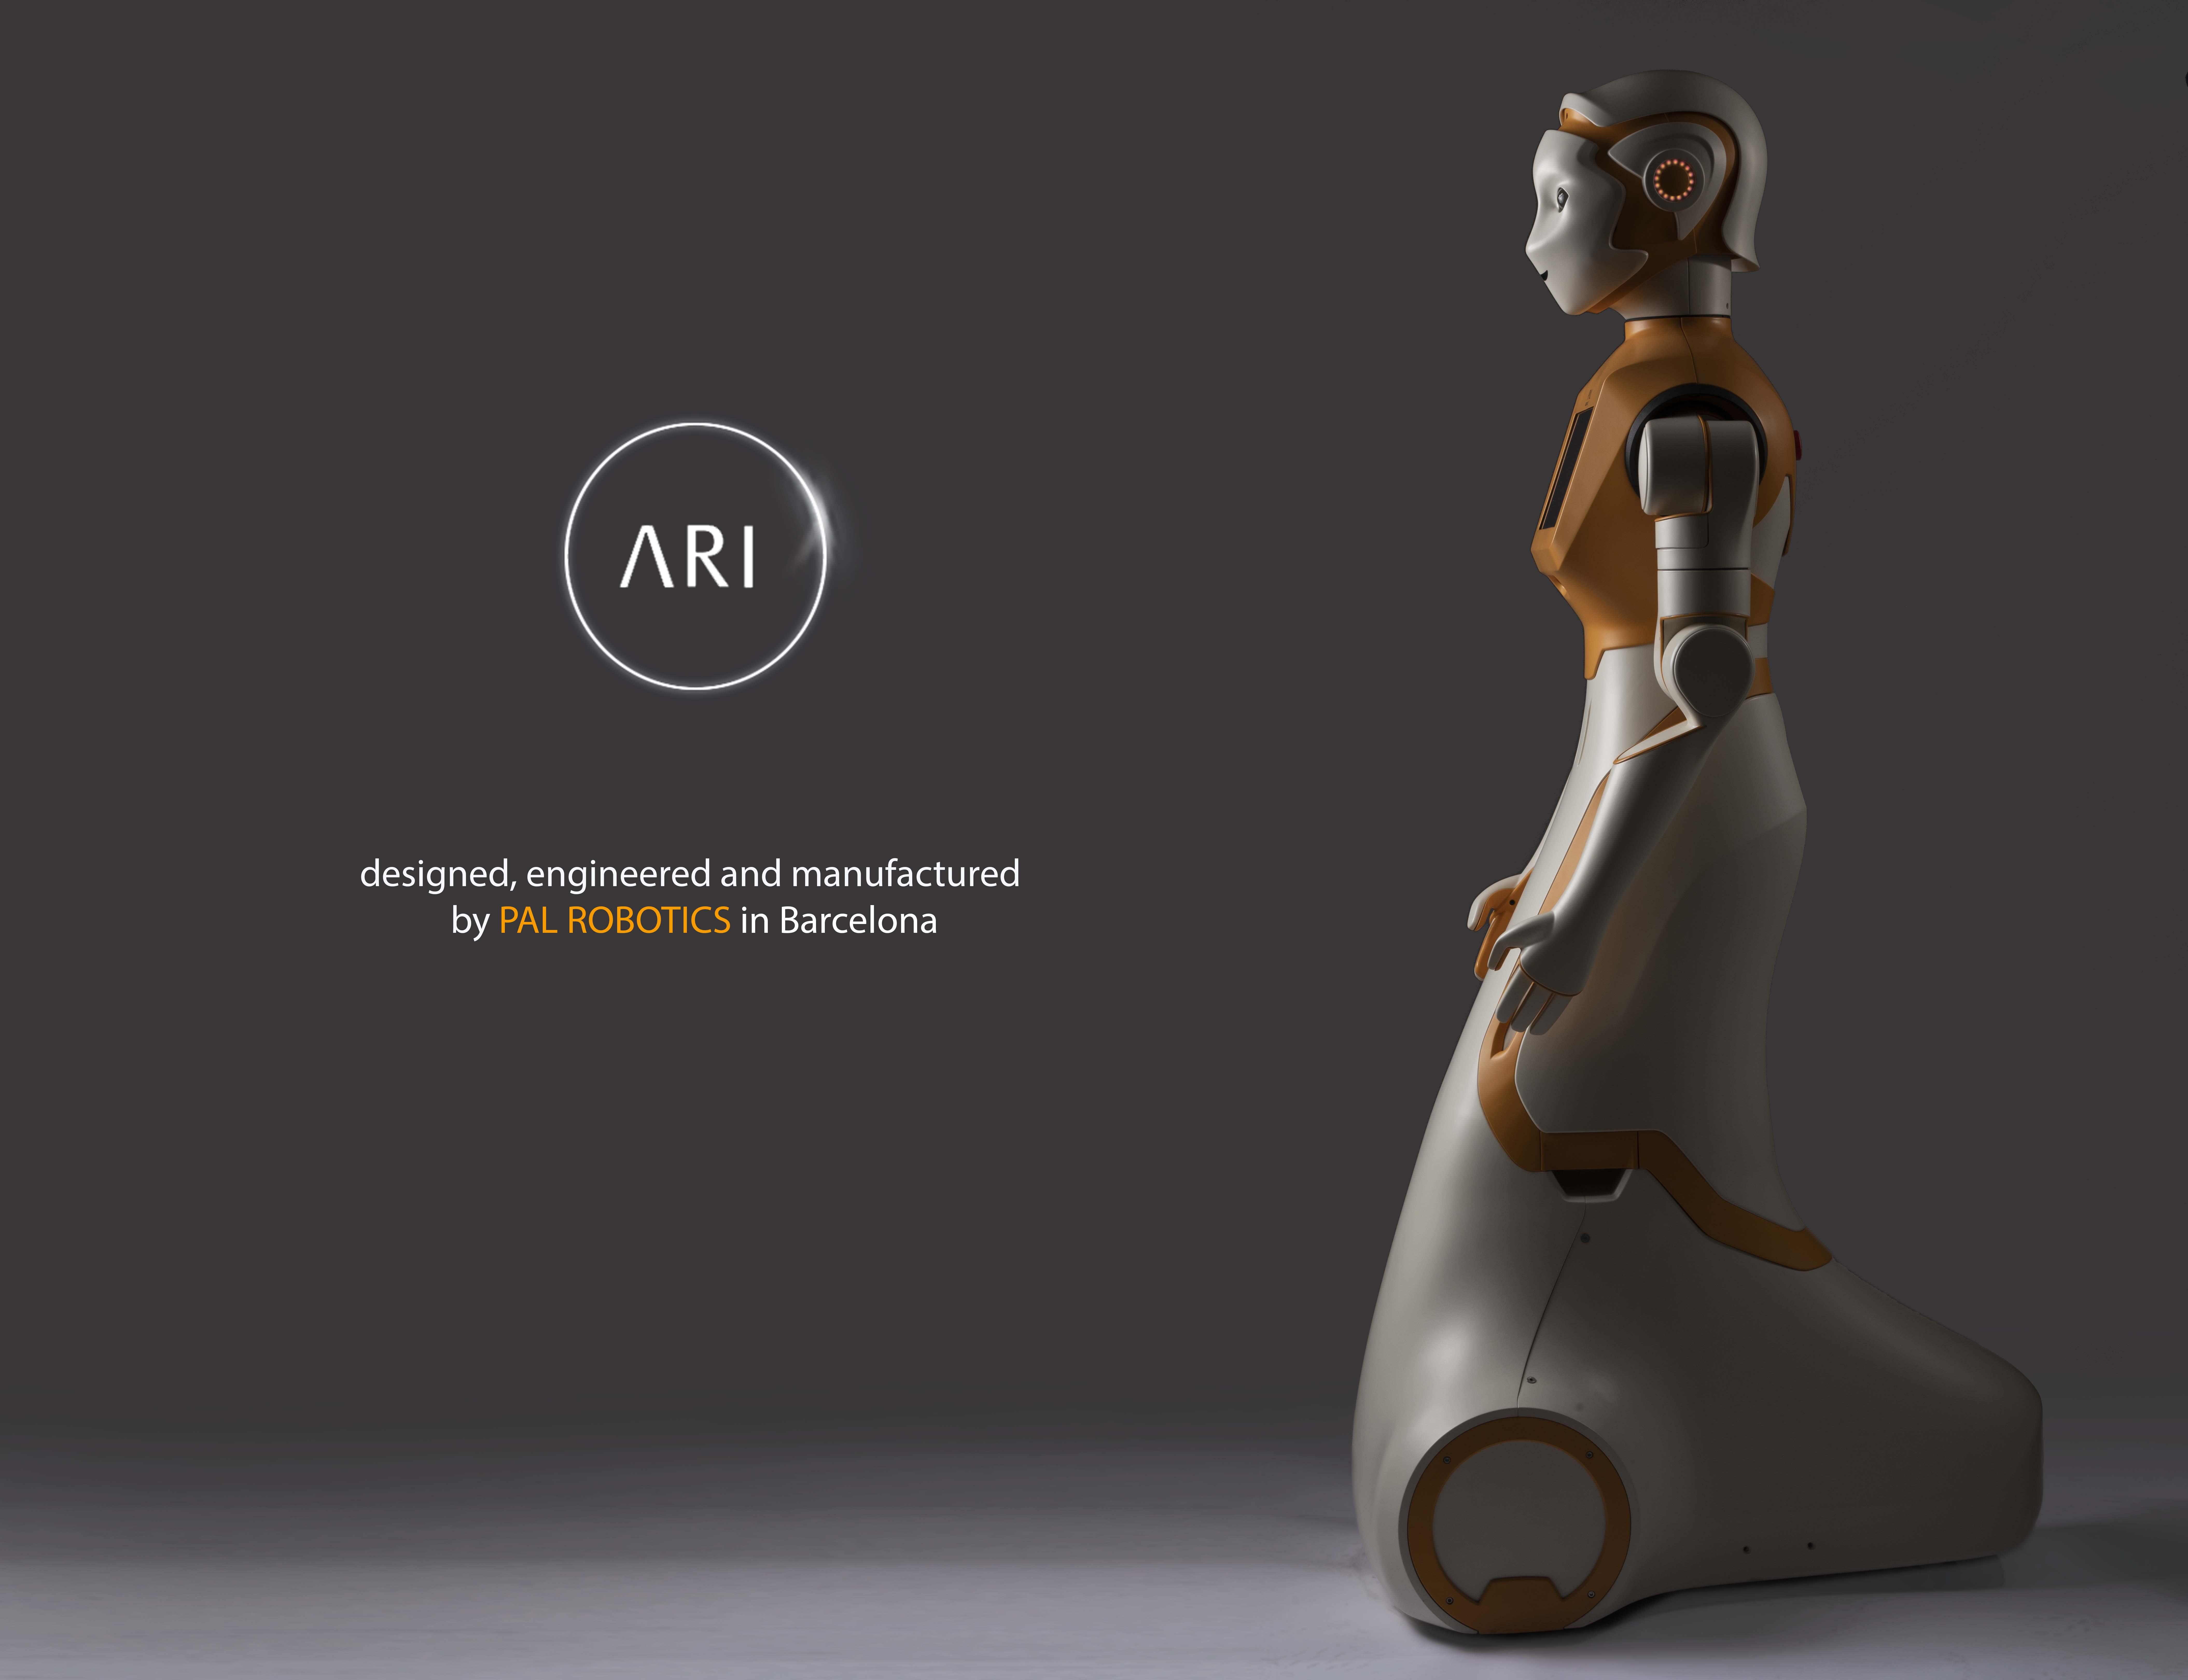 Meet ARI: Service Robotics and Artificial Intelligence in One Single Platform